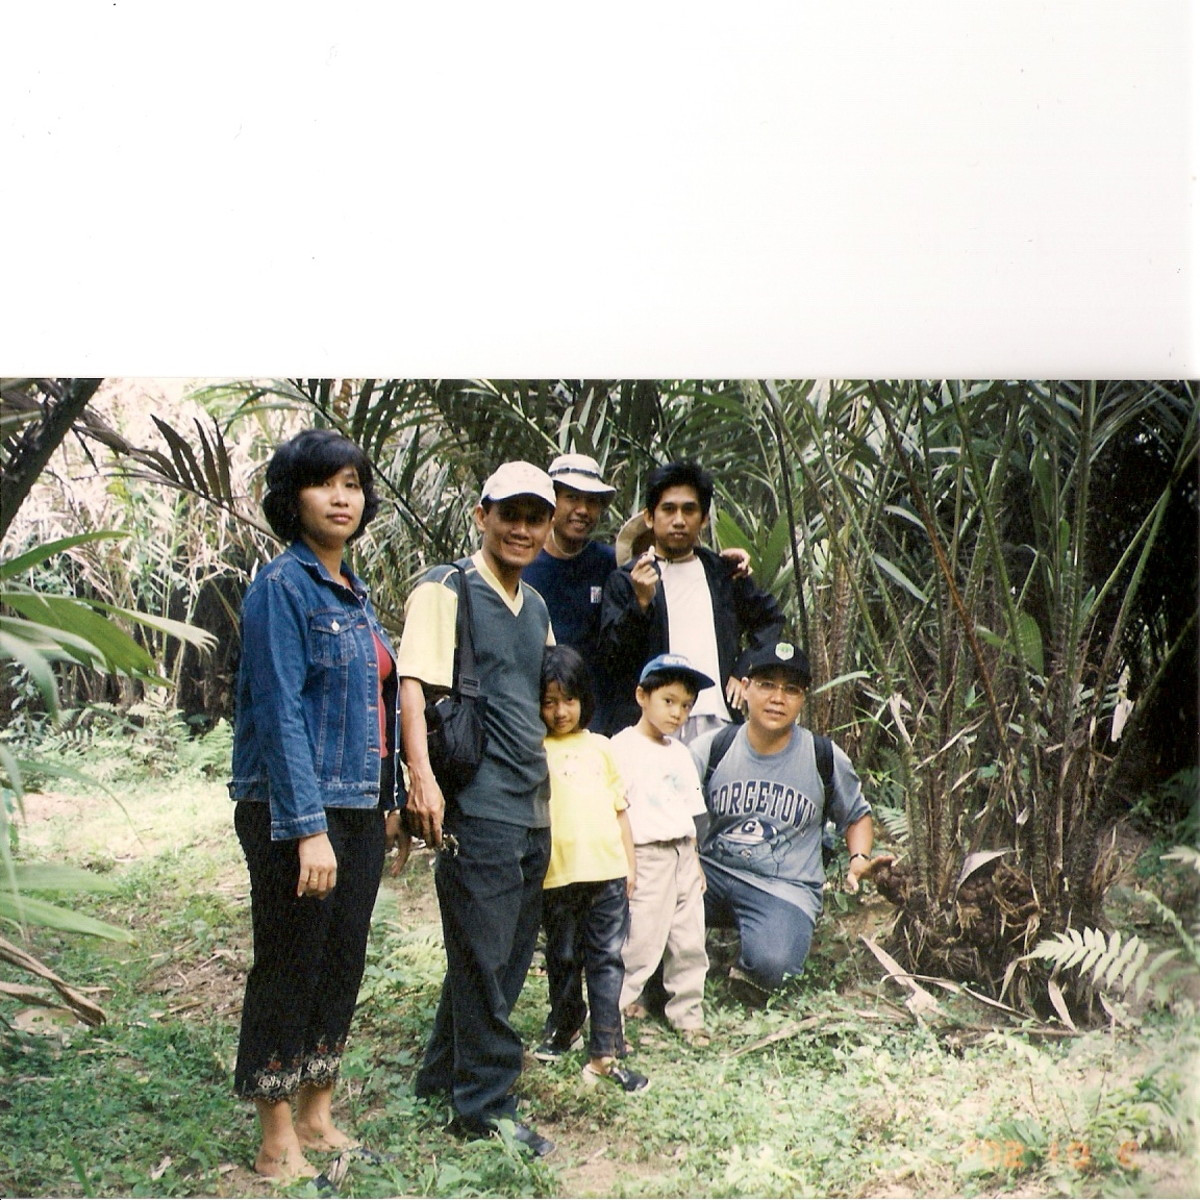 Here we had our picture taken while taking a rest  at a Salak Pondoh plantation in Yogjakarta.